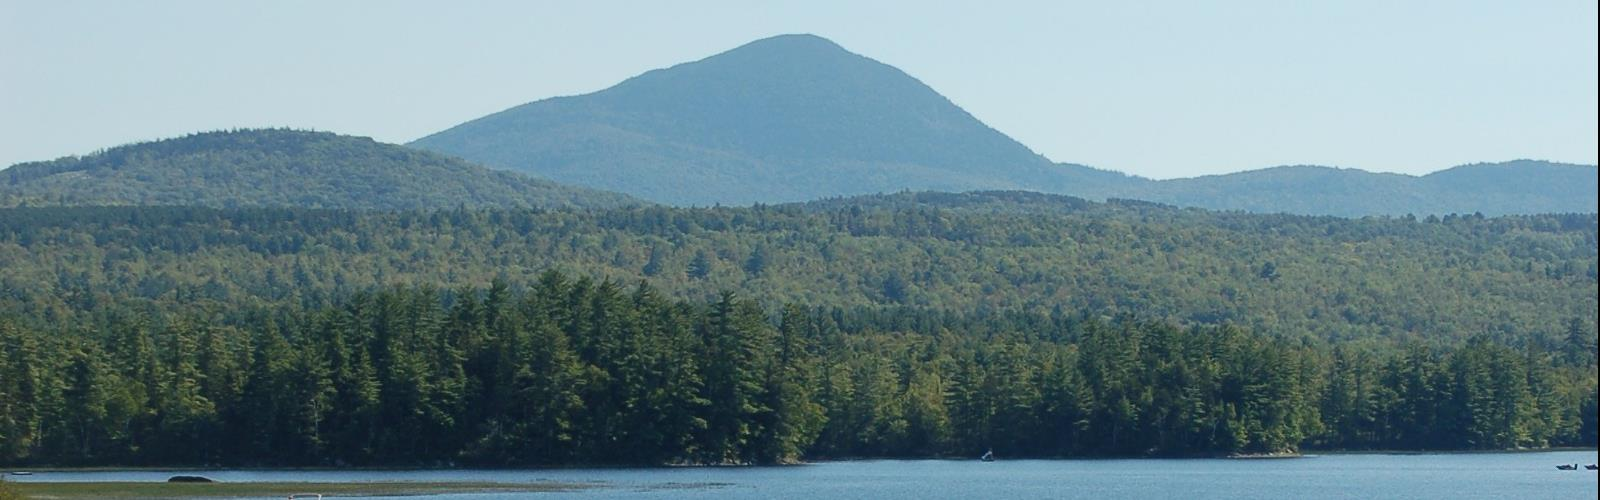 Mount Blue, Maine - Hiking